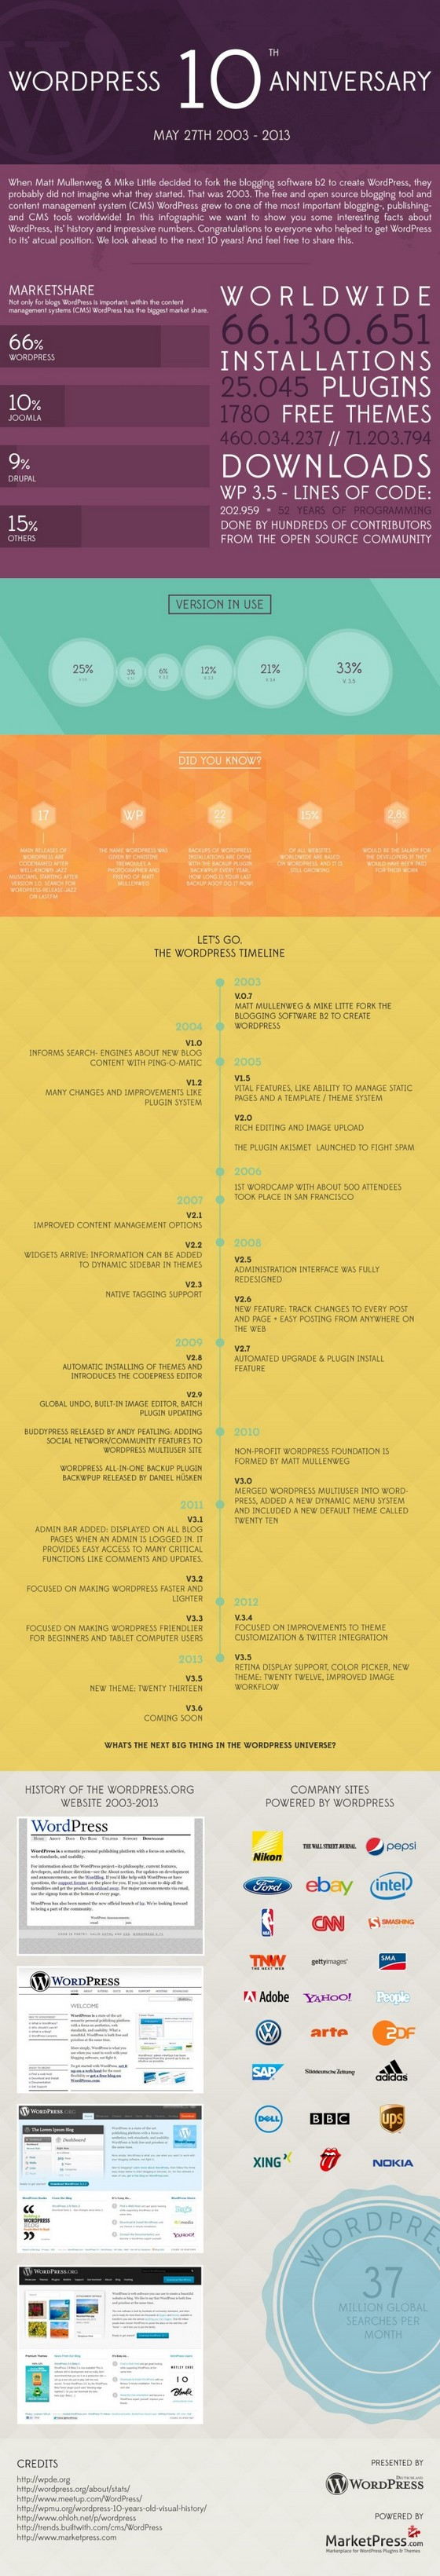 wordpress_10_years_anniversary_infographic_by_marketpress_small